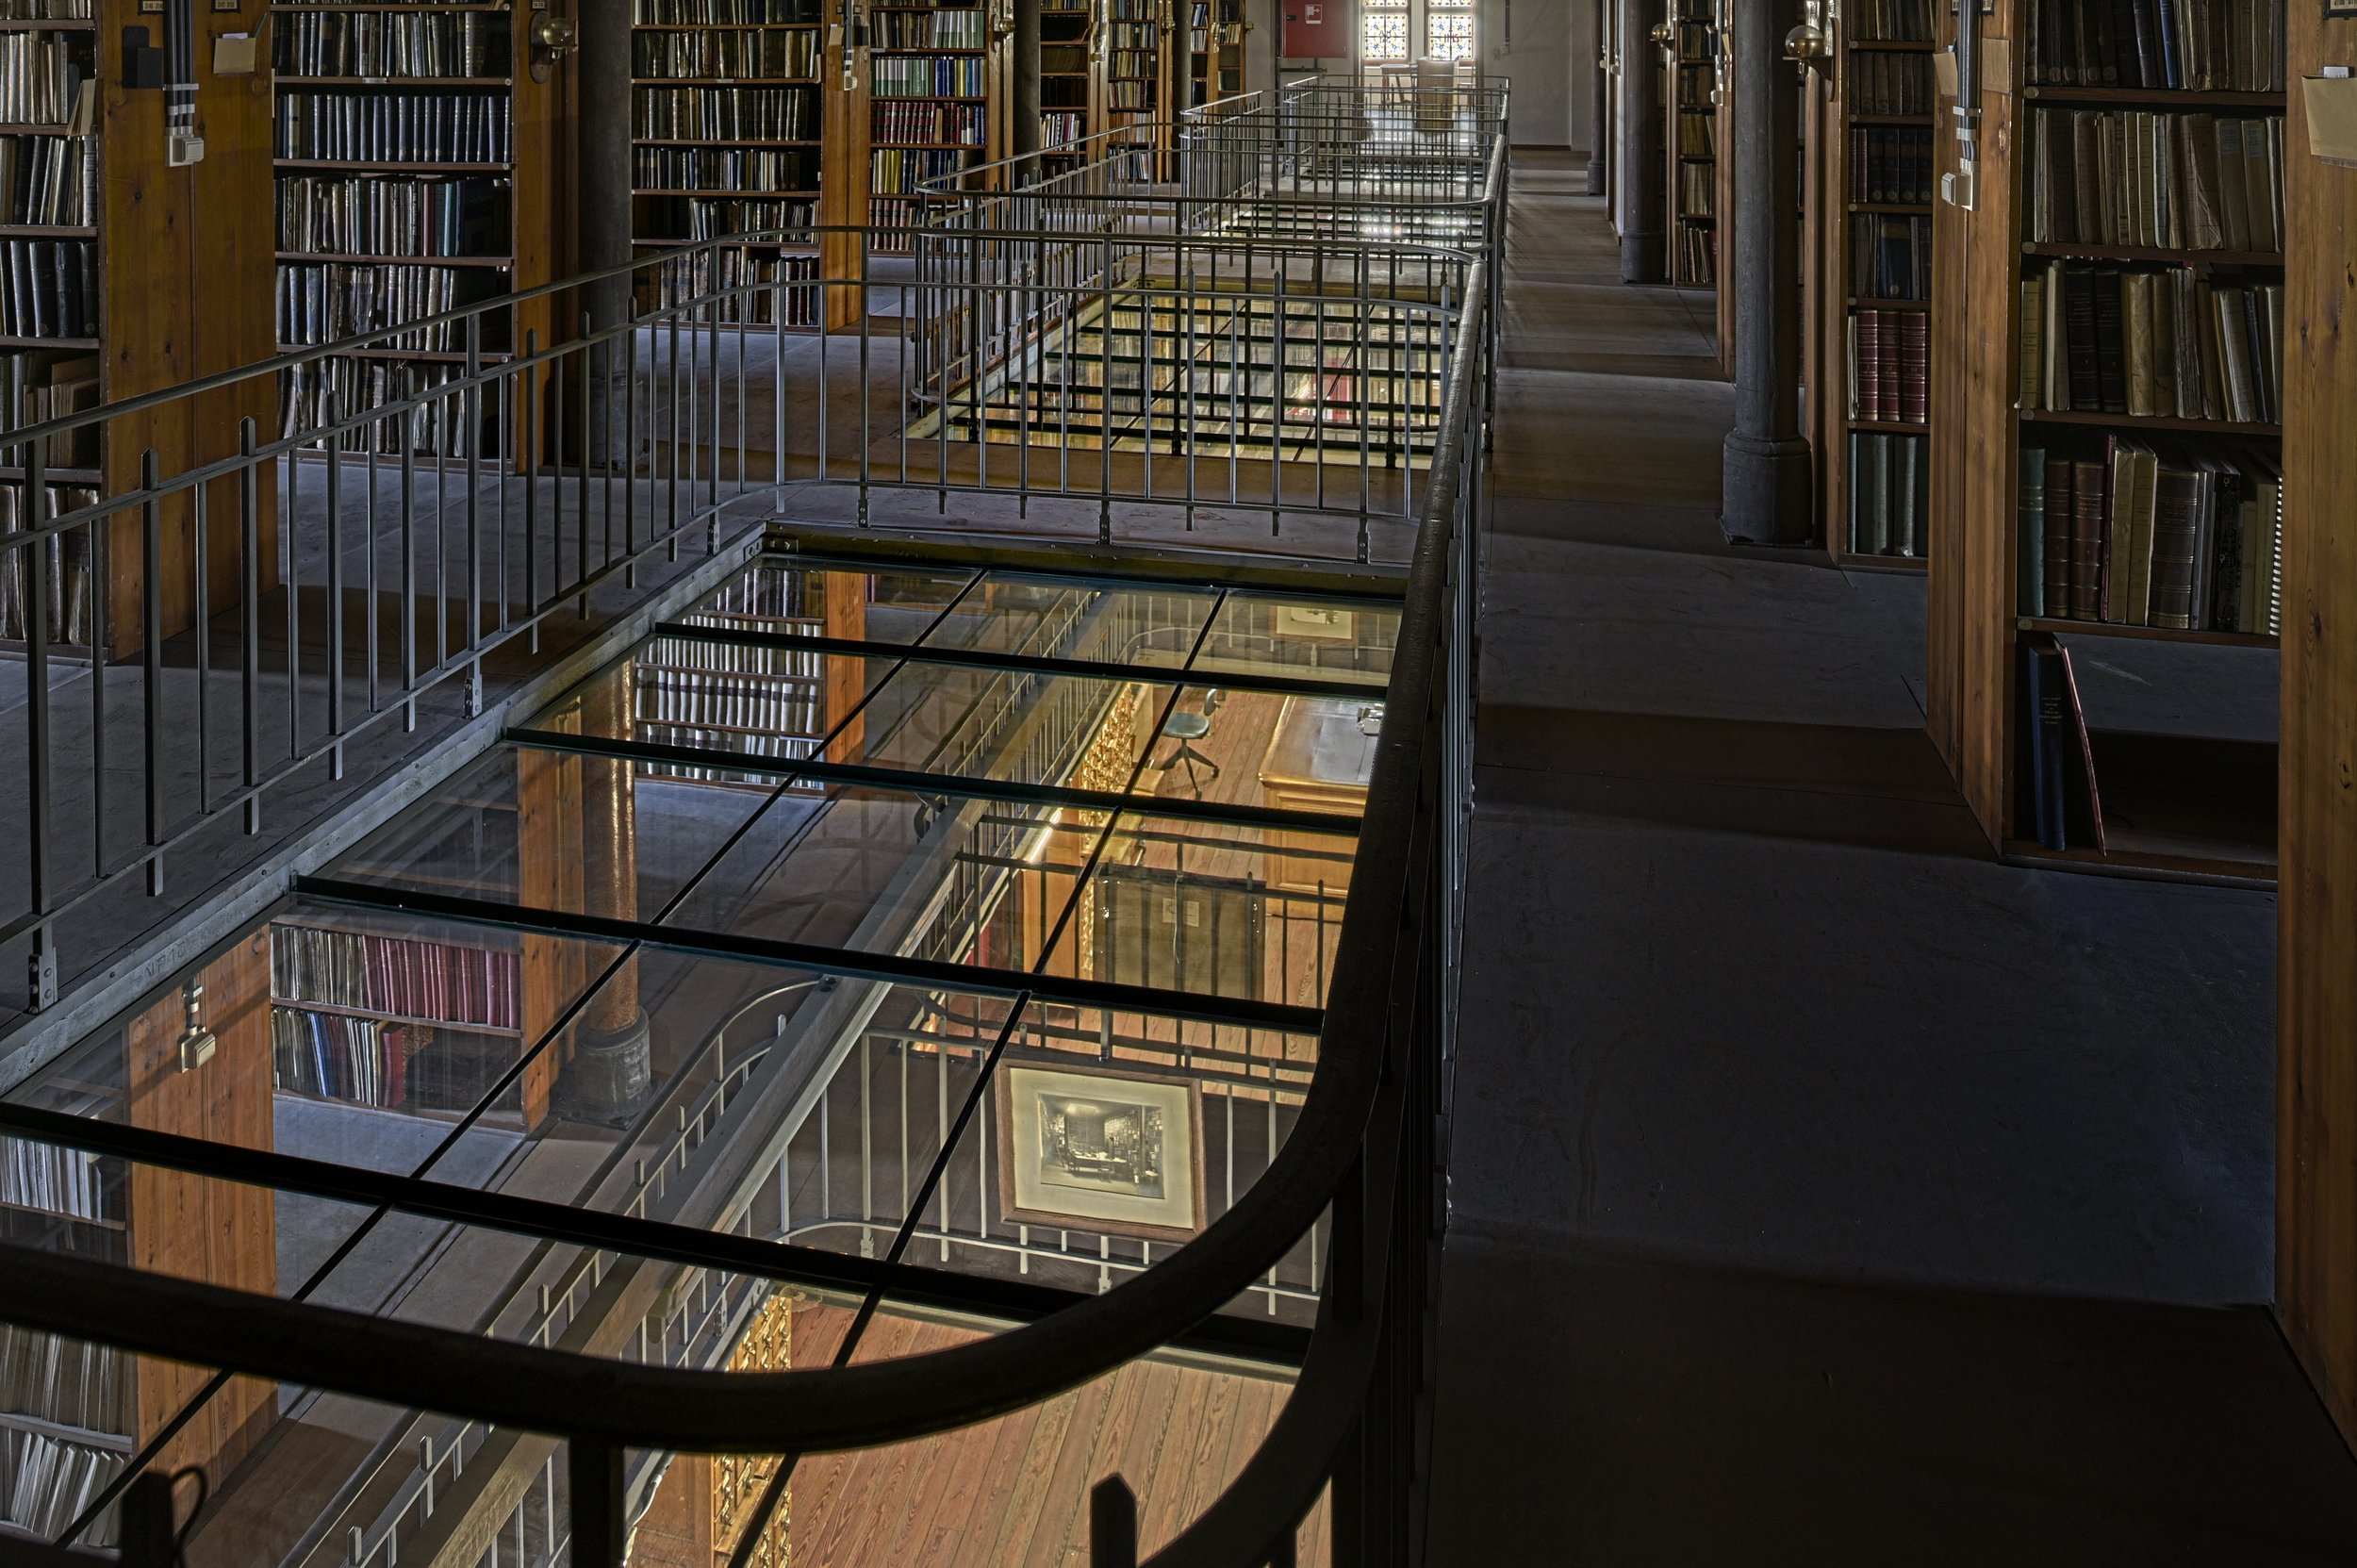 The Bollandist Society Library in Brussels, Belgium (photo courtesy of Irini de Saint Sernin)